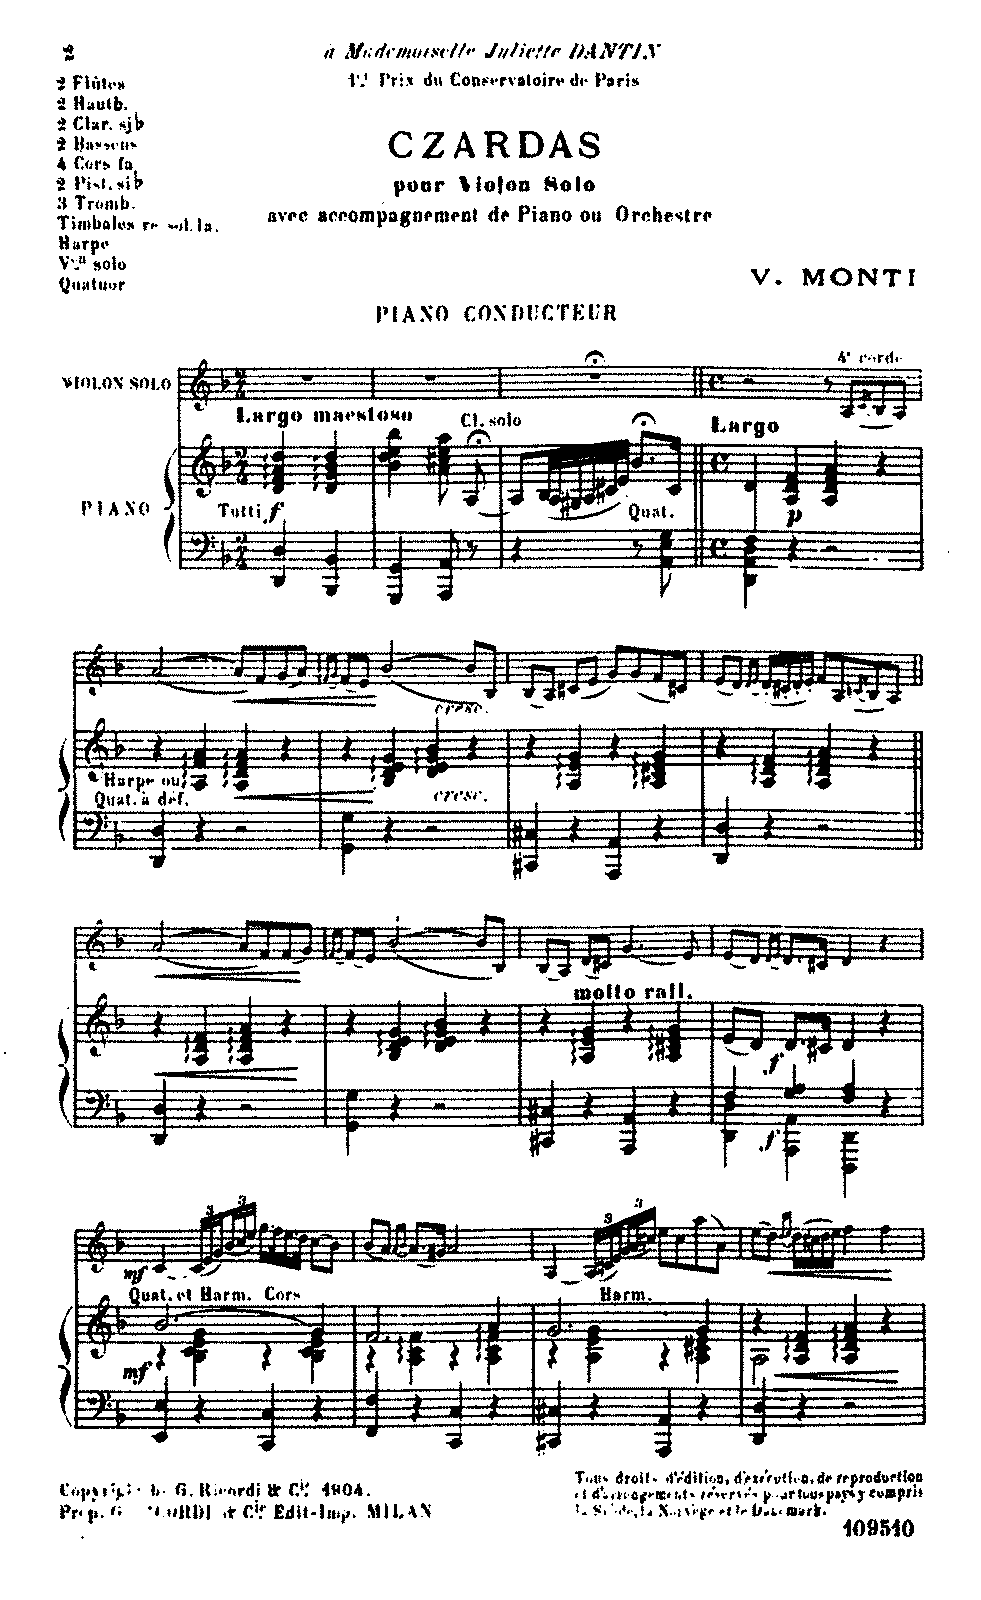 PMLP13438-Monti - Czardas for Violin and Orchestra (Ricordi 1904) 00 Piano Cond.pdf